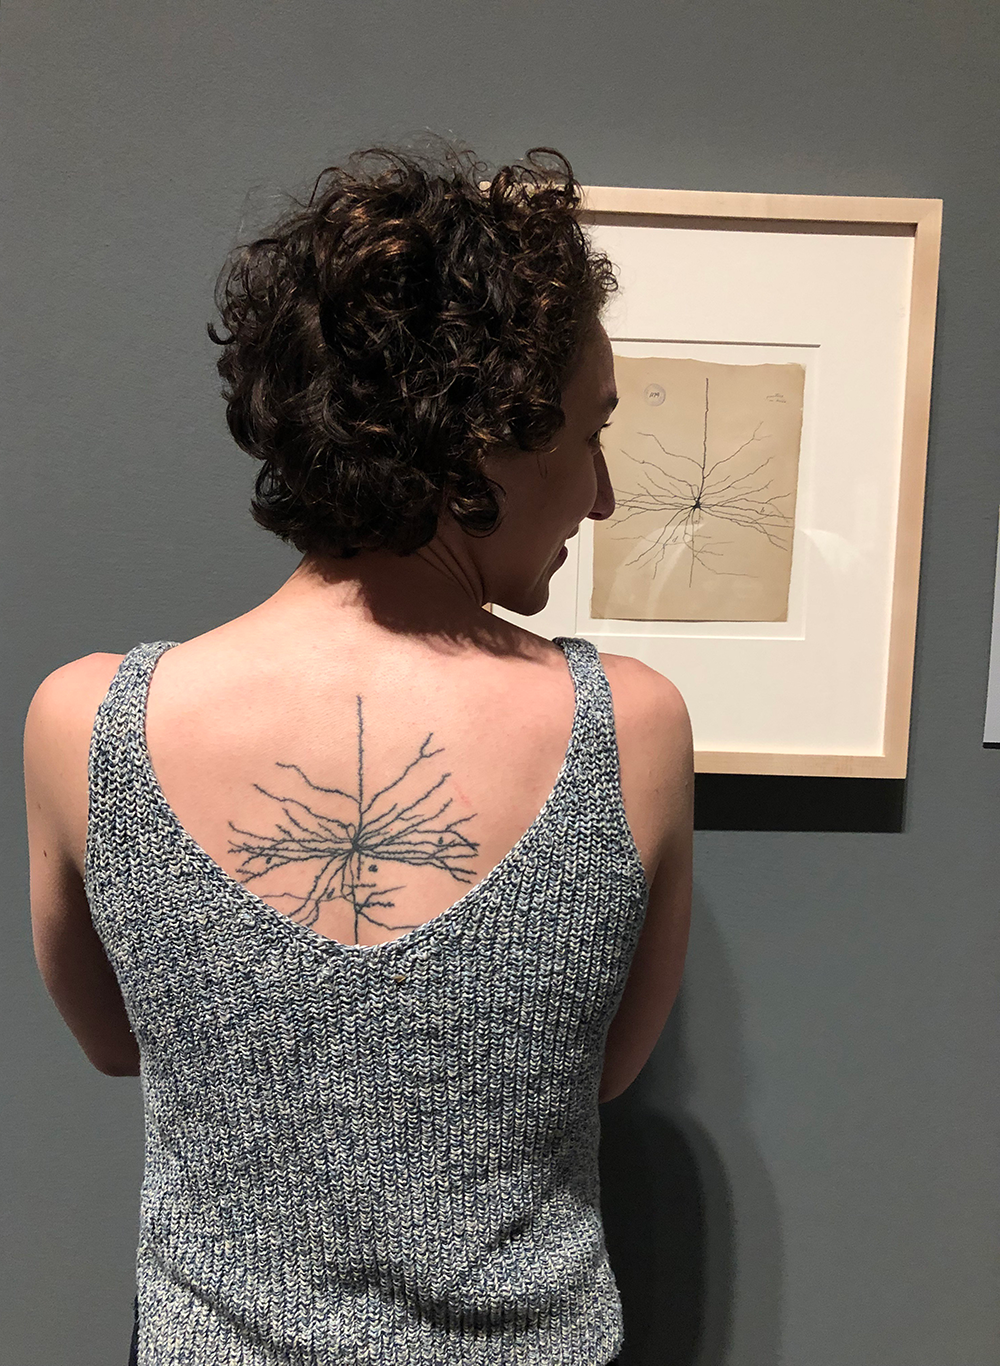 Photo of a woman from behind showing the pyramidal neuron tattoo on her back while standing in front of a drawing of a pyramidal neuron